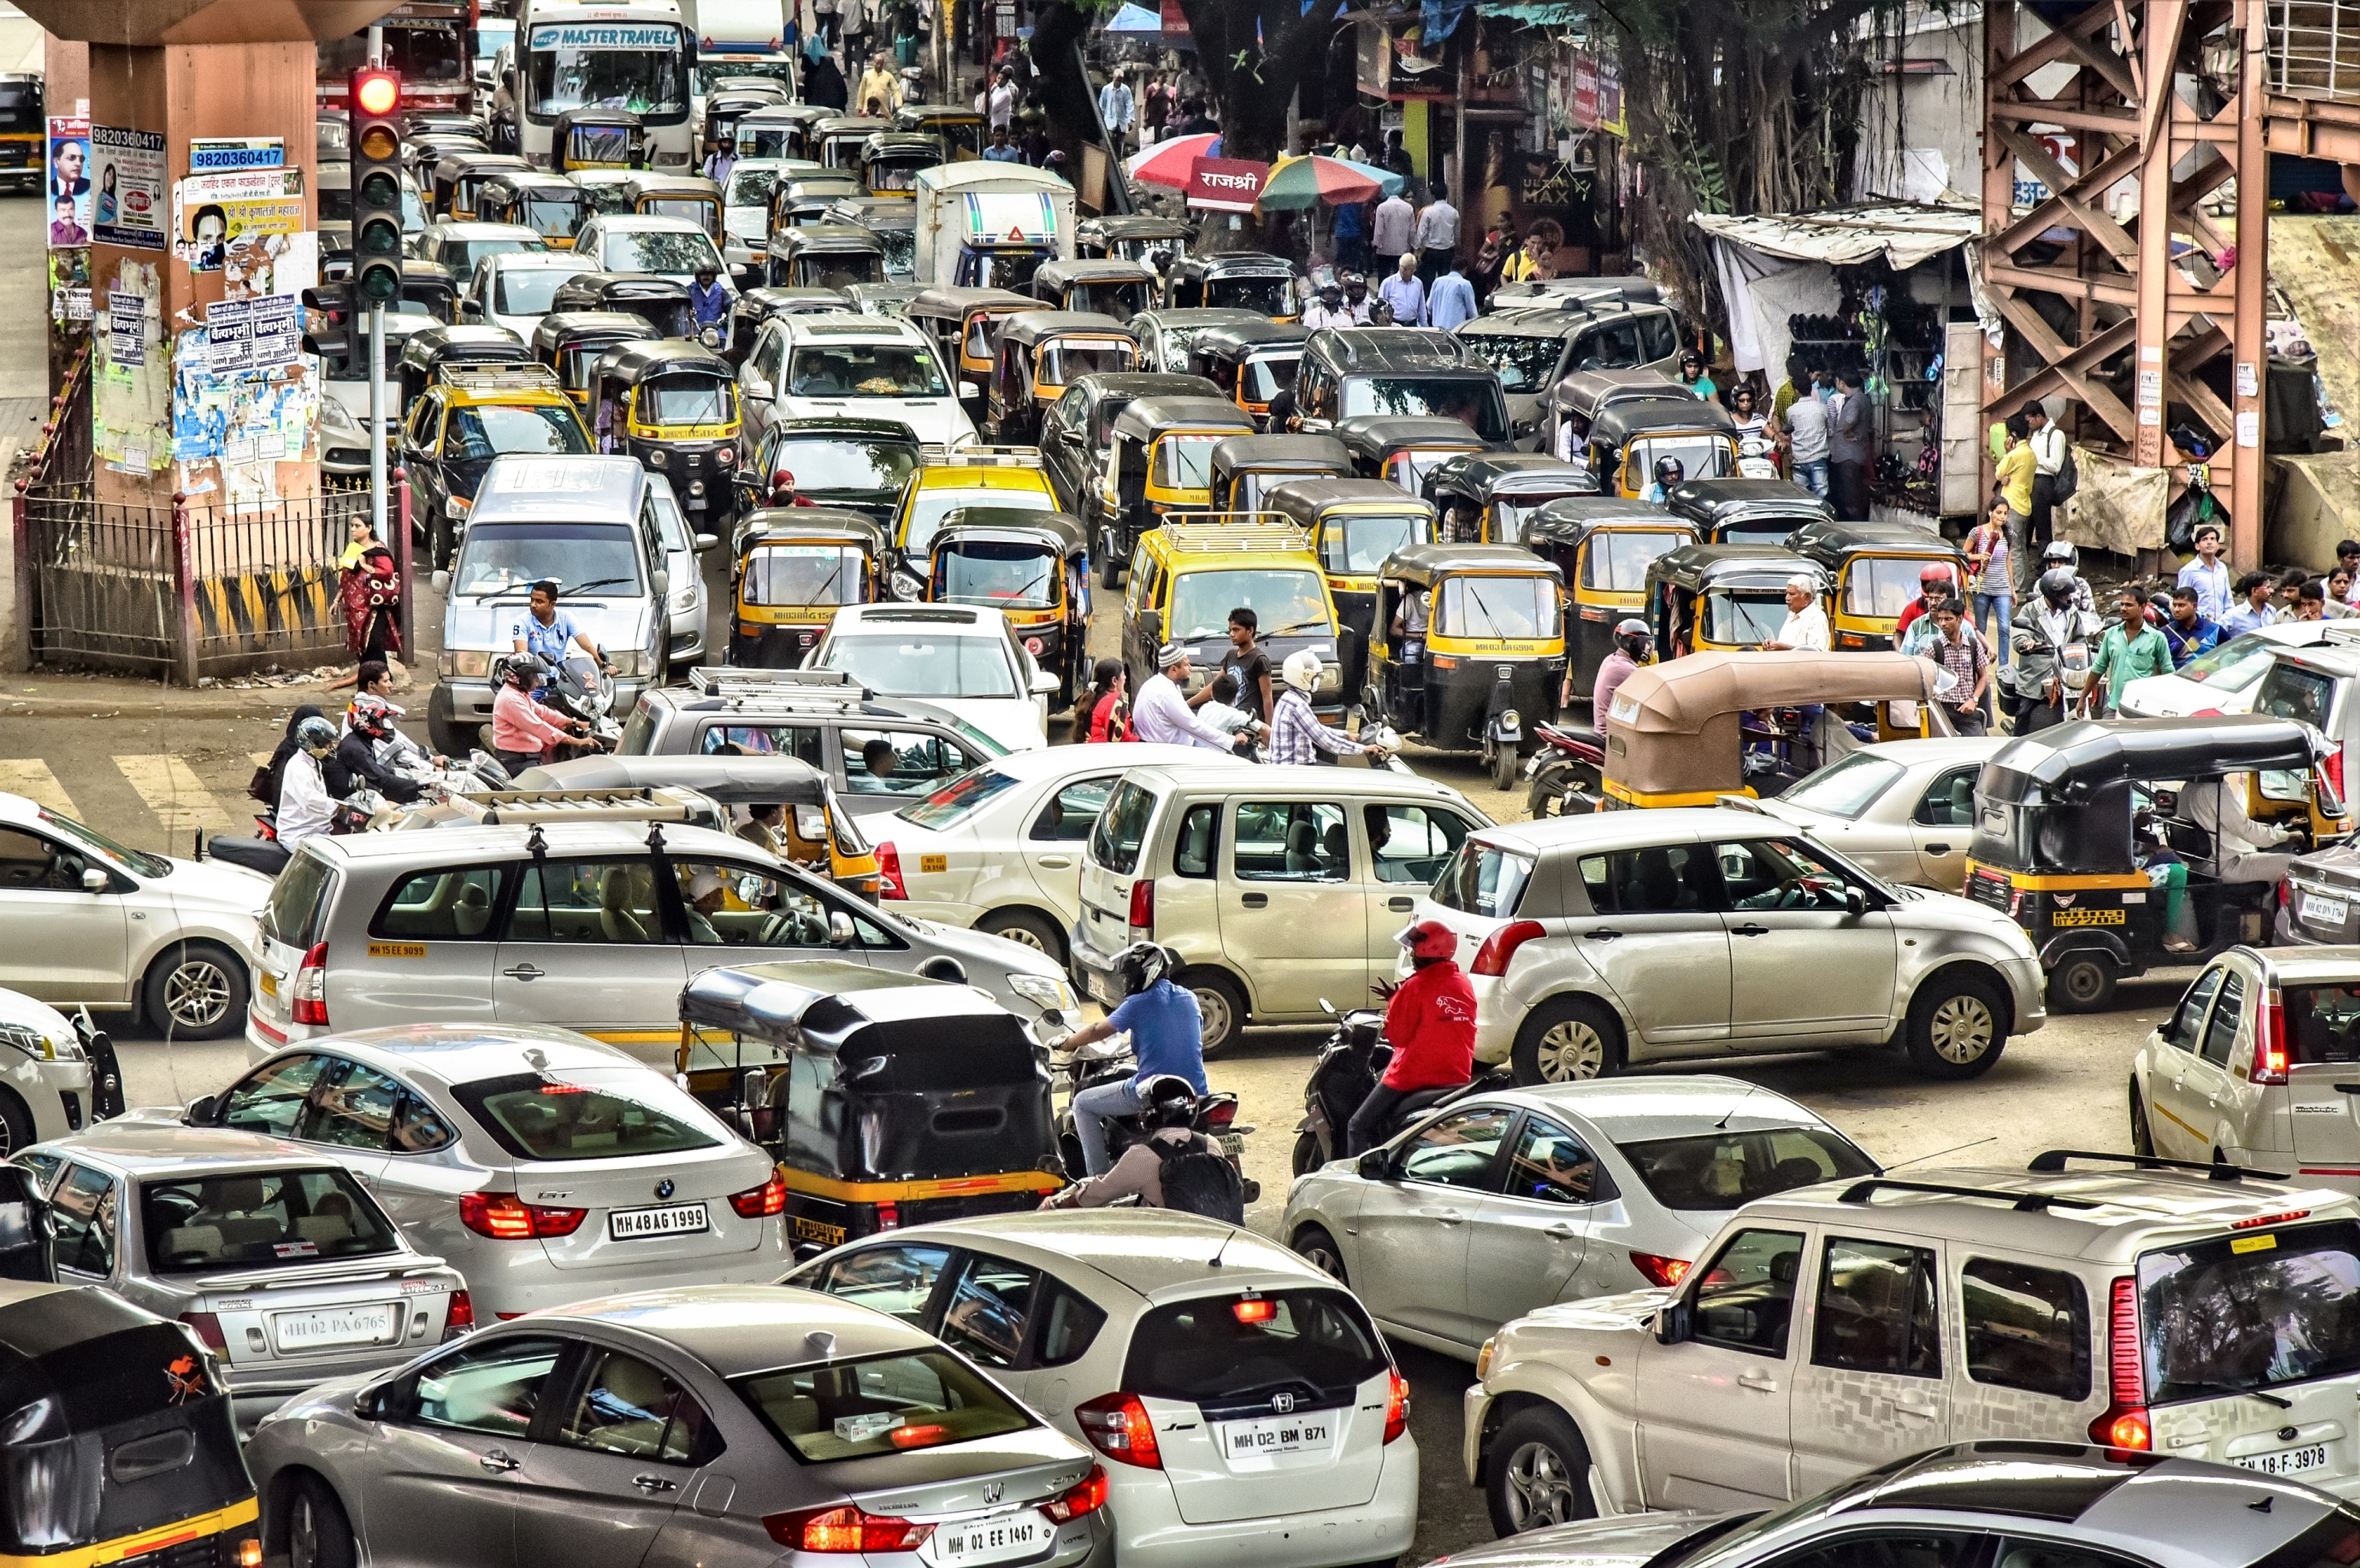 The auto companies are now gearing up to restart operations for which discussions with factory heads, parts vendors, state administration, dealers, services centres, supply distribution and retail customers have begun.